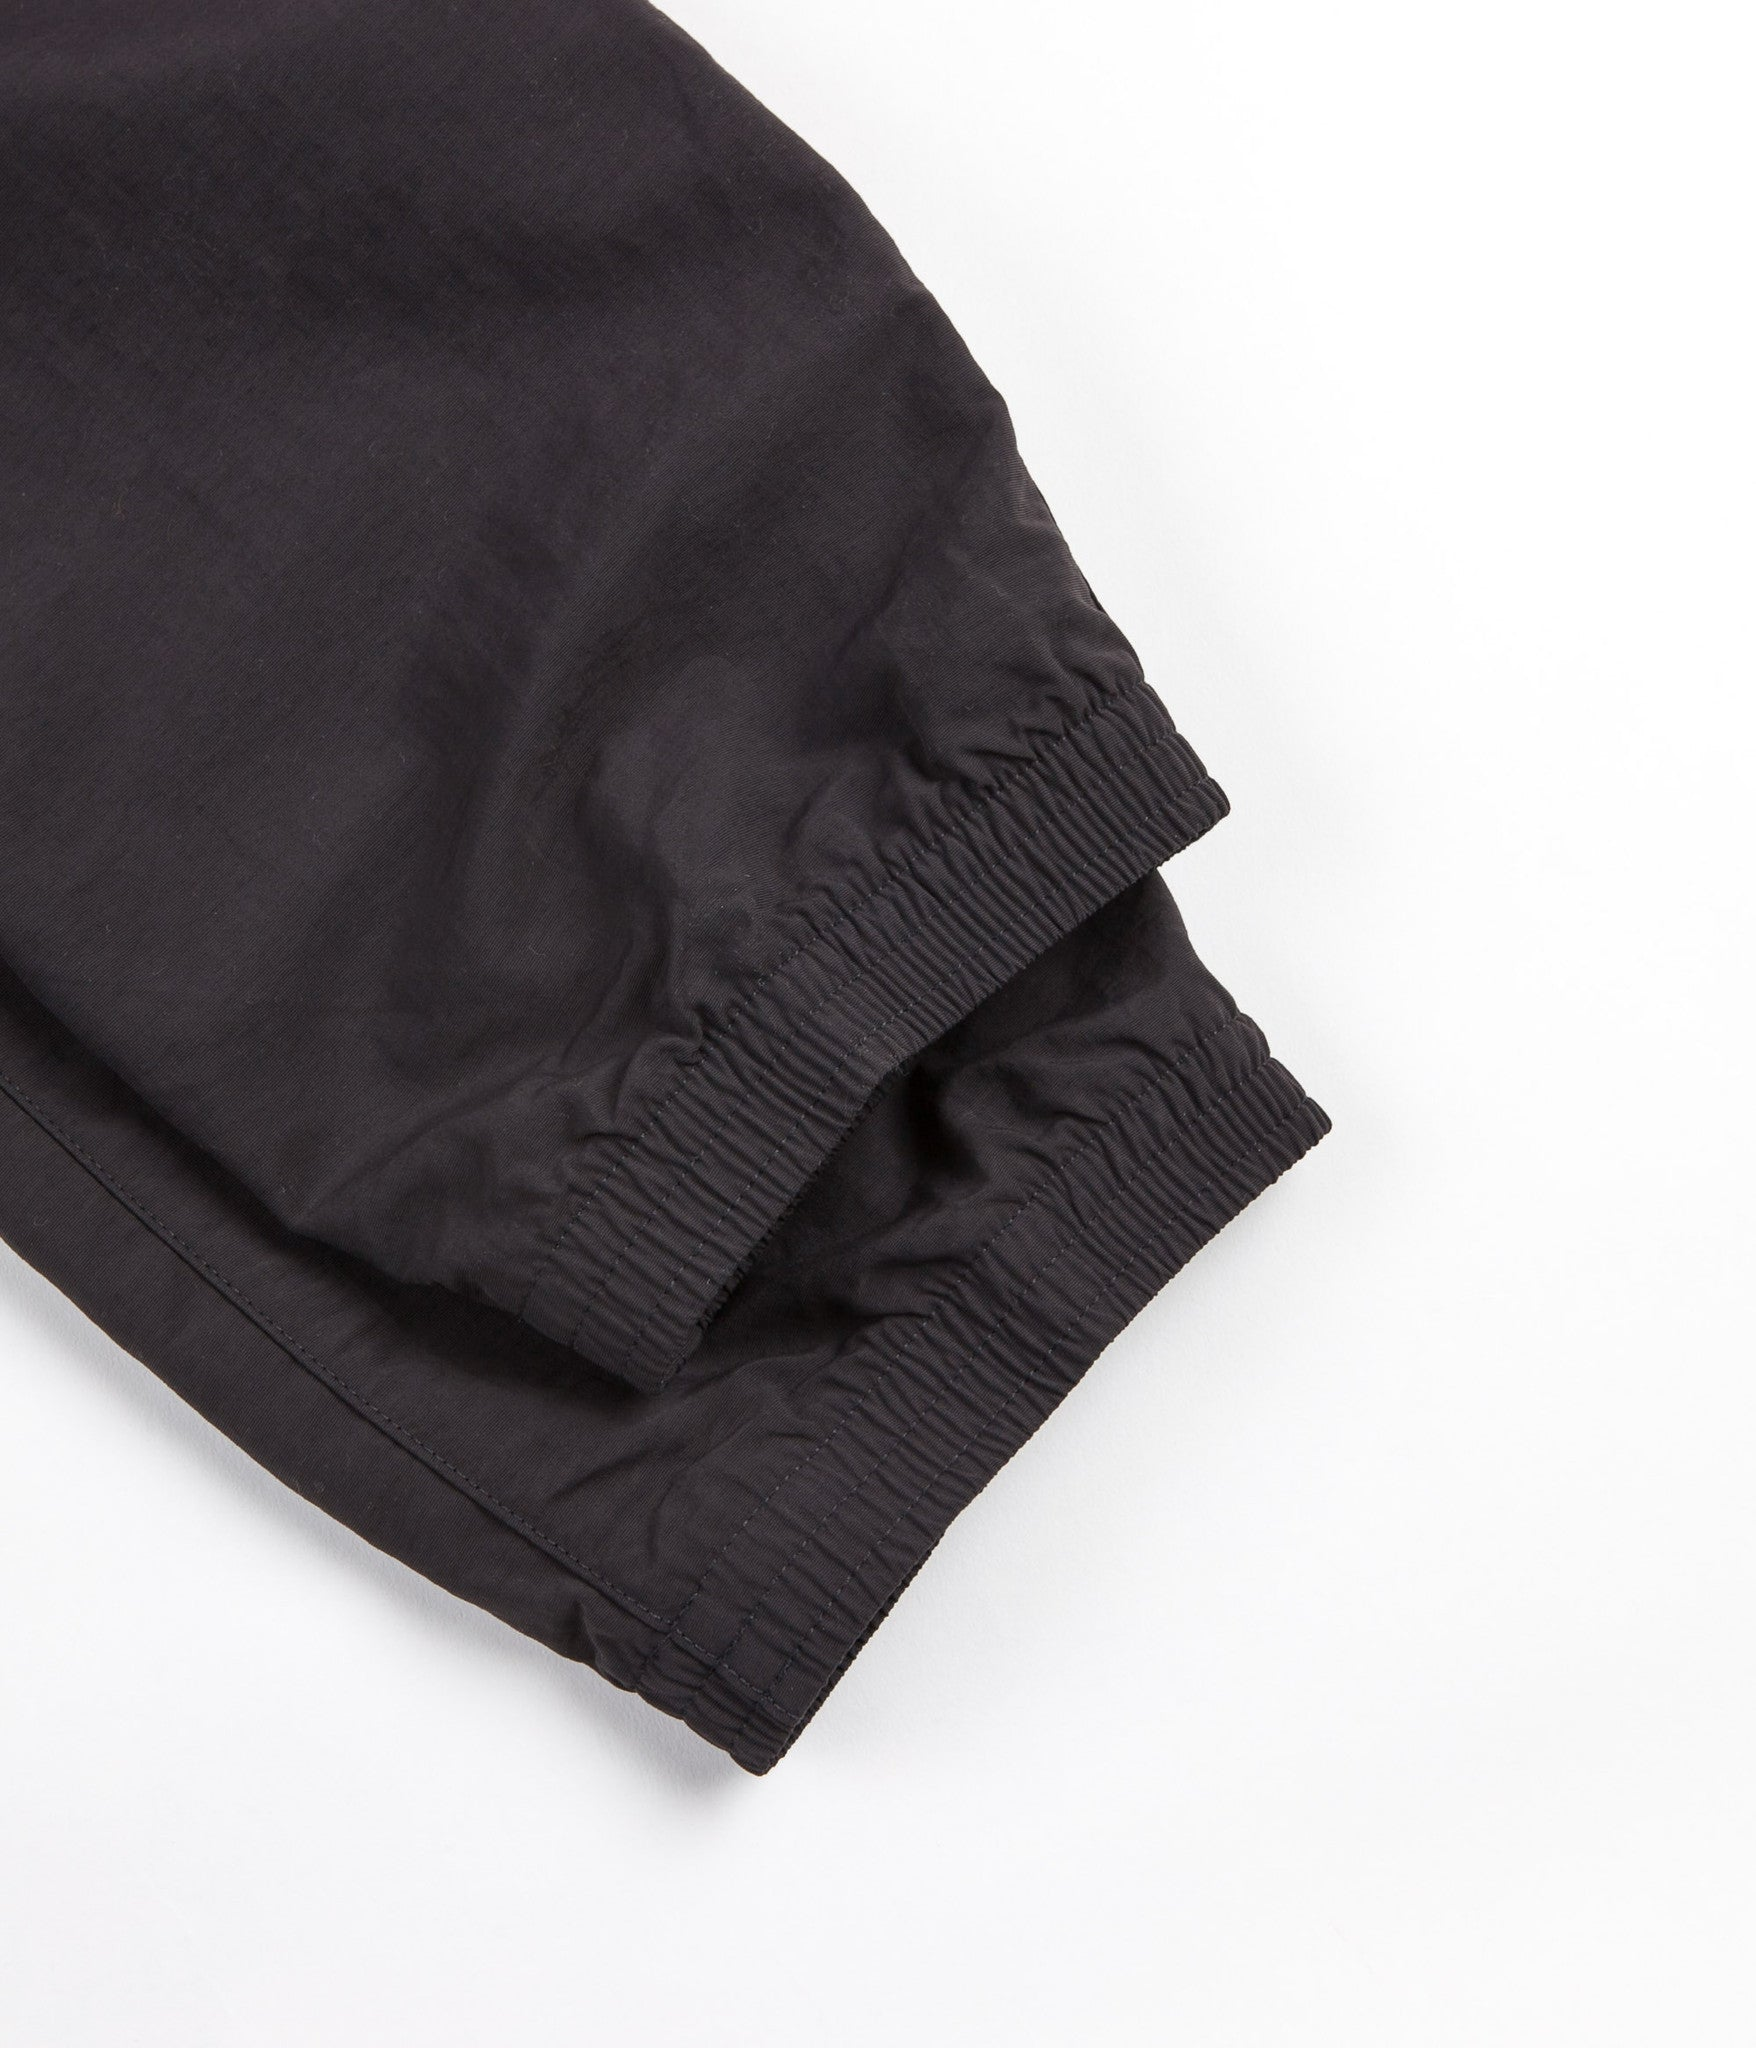 Patagonia Baggies Sweatpants - Ink Black